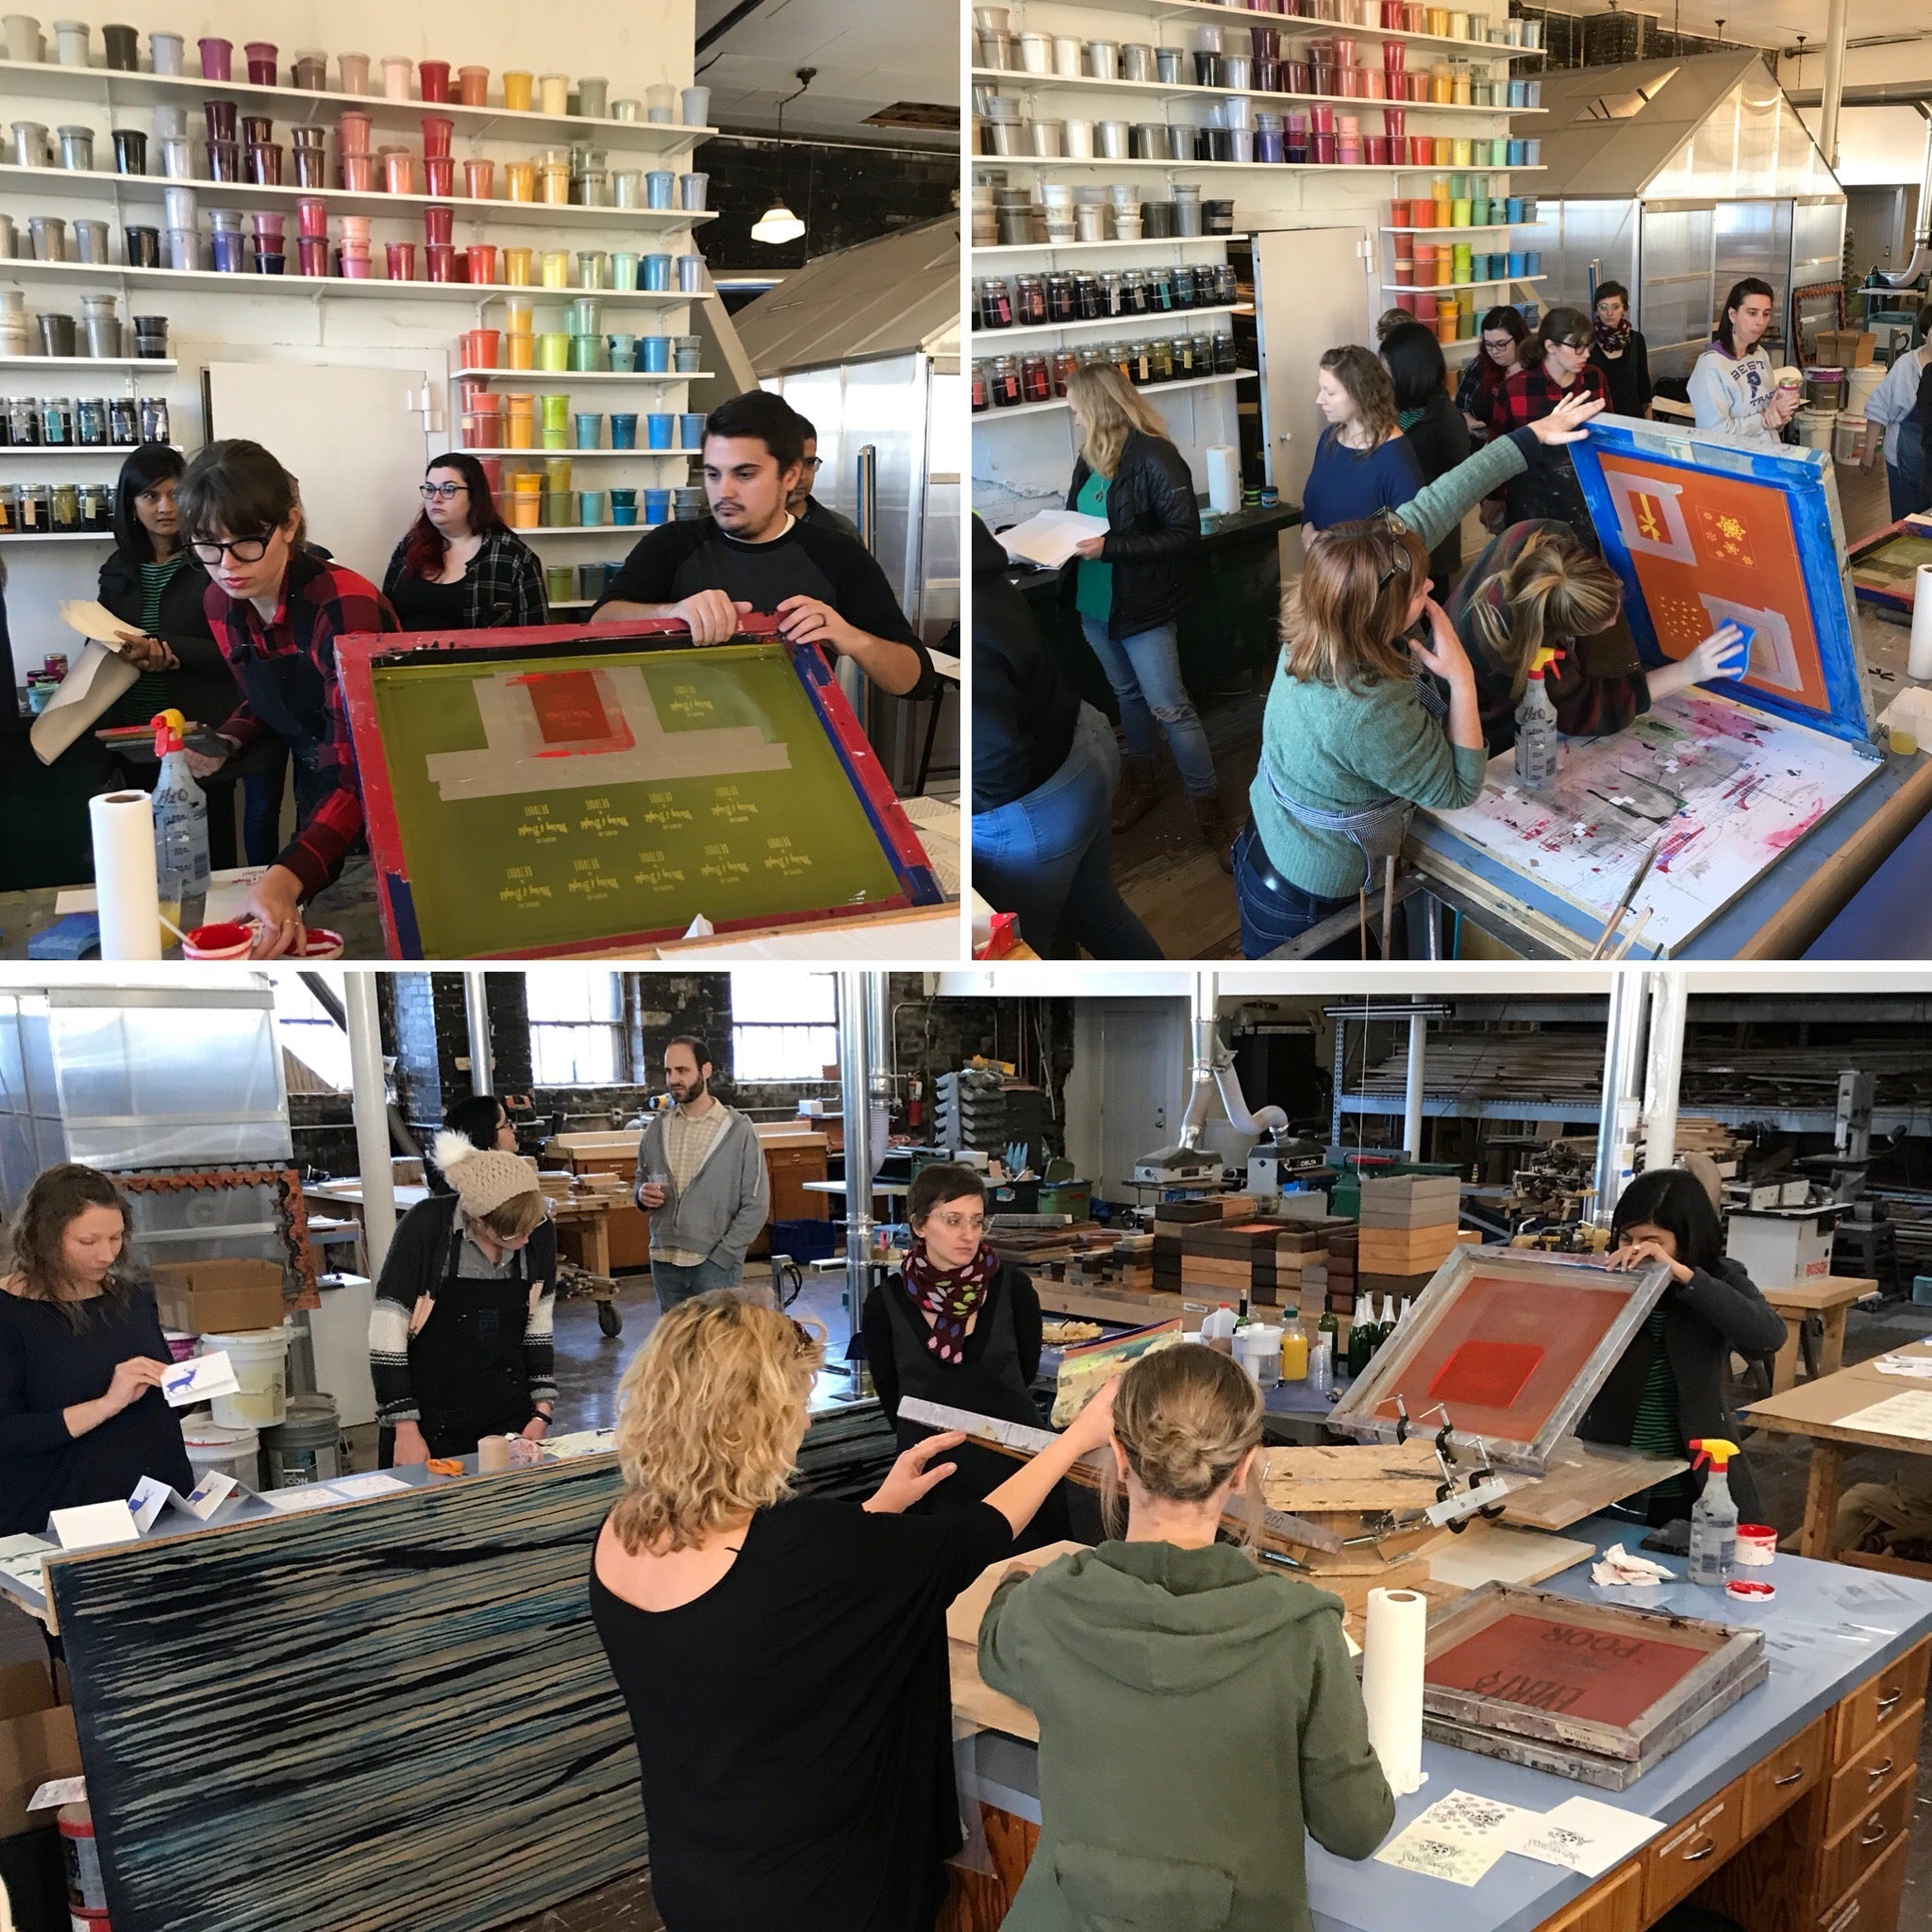 09/28 Screen Printing Workshop: Dogs on Notecards on Saturday September 28 at 10:30am